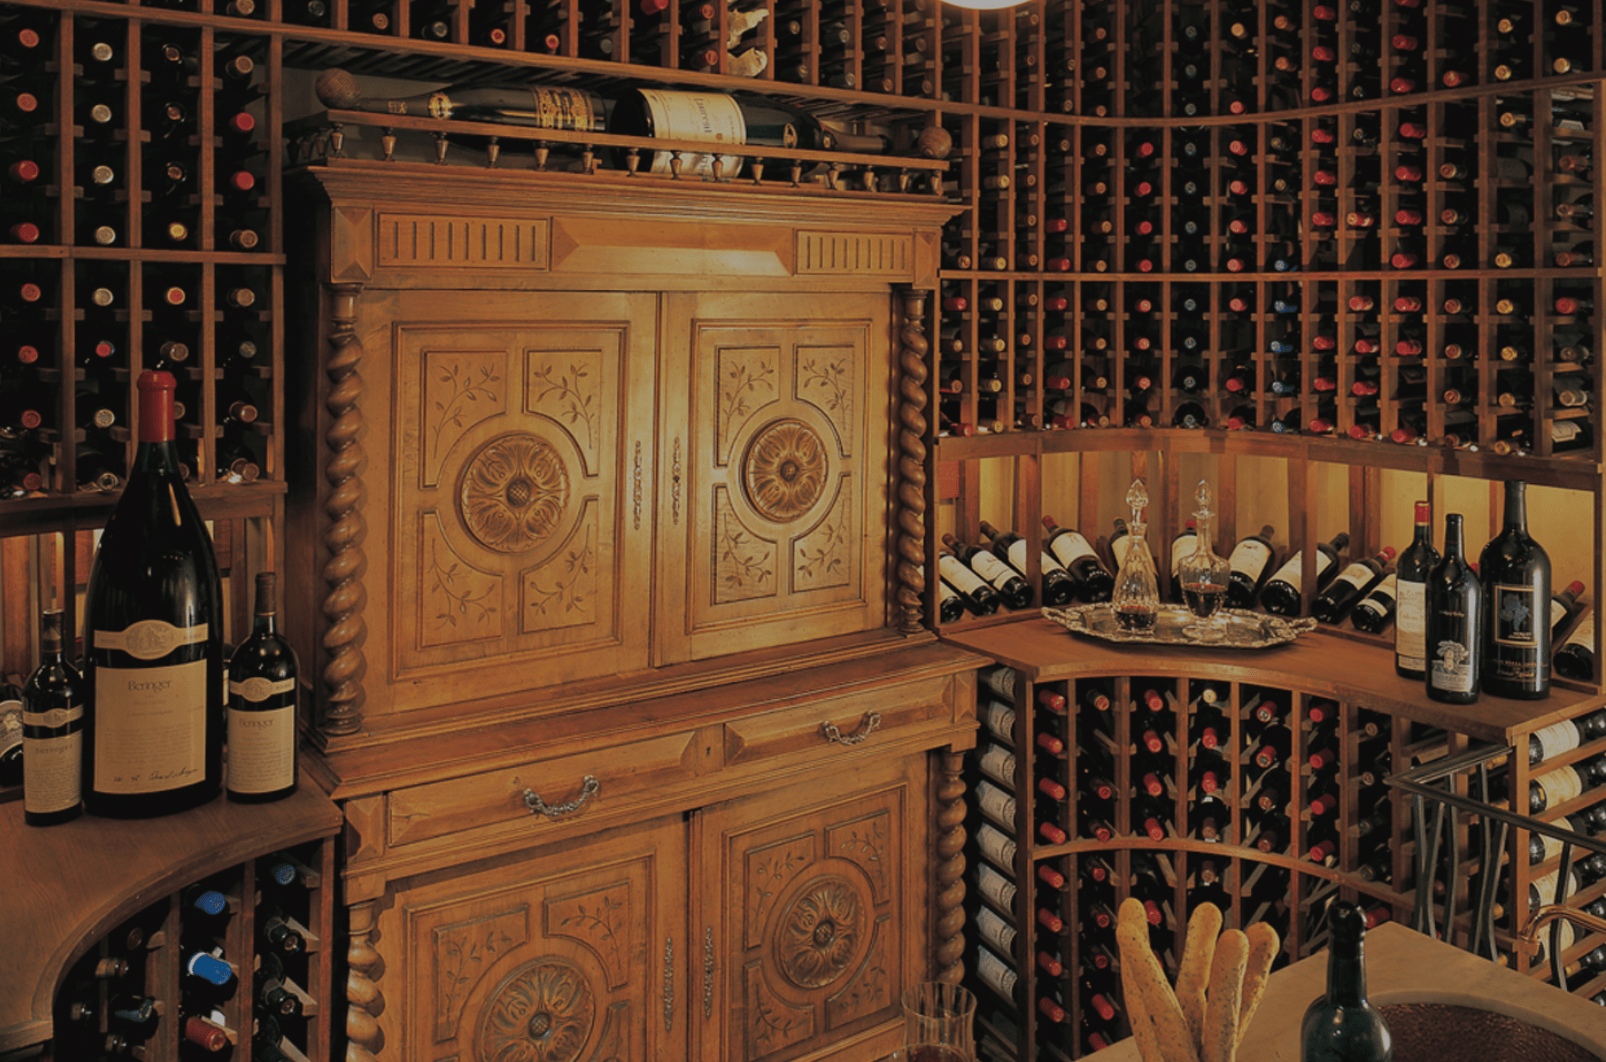 This 1,400 bottle wine cellar has custom wine storage throughout including very cool curved cabinets in the corner, overhead racking and a tasting table.